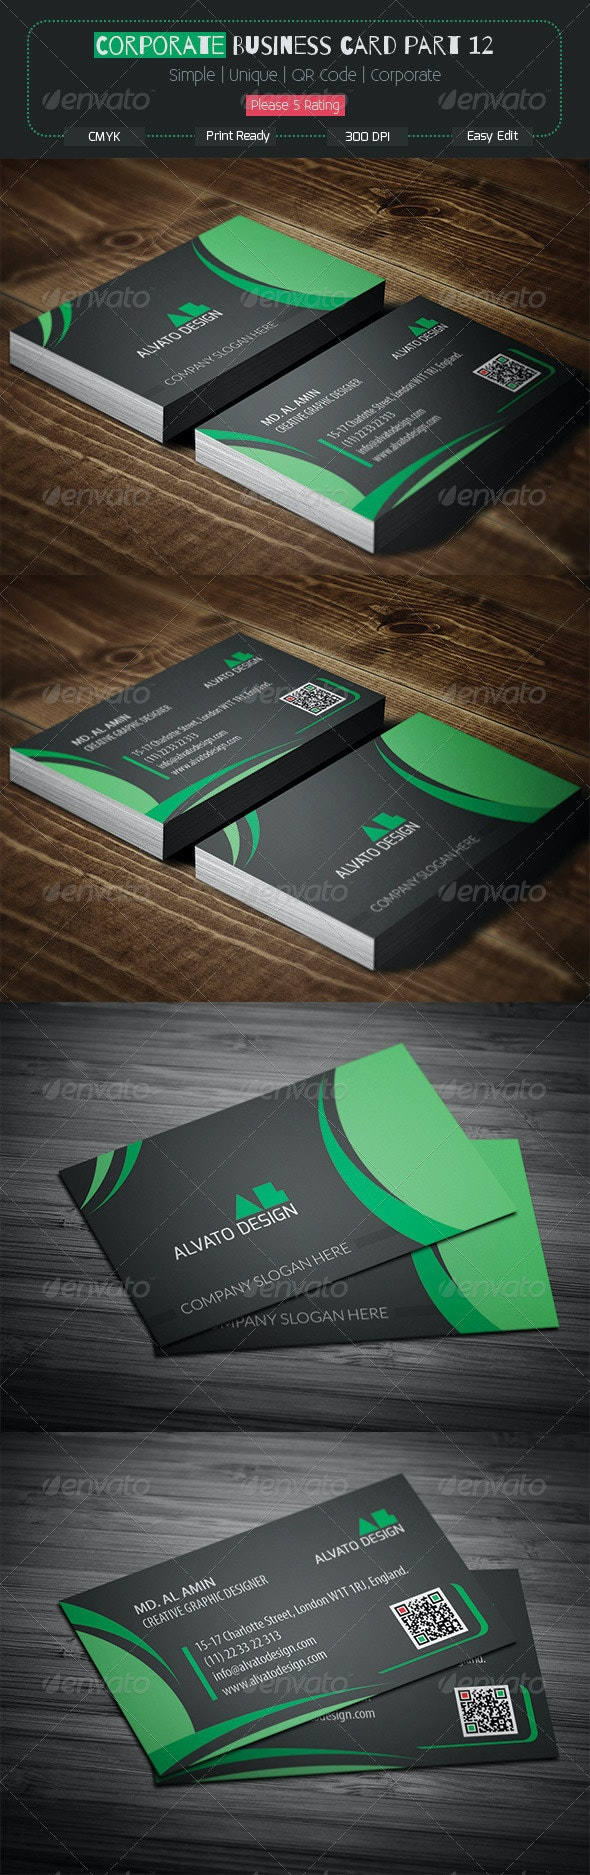 Corporate Business Card Part 12 - Corporate Business Cards